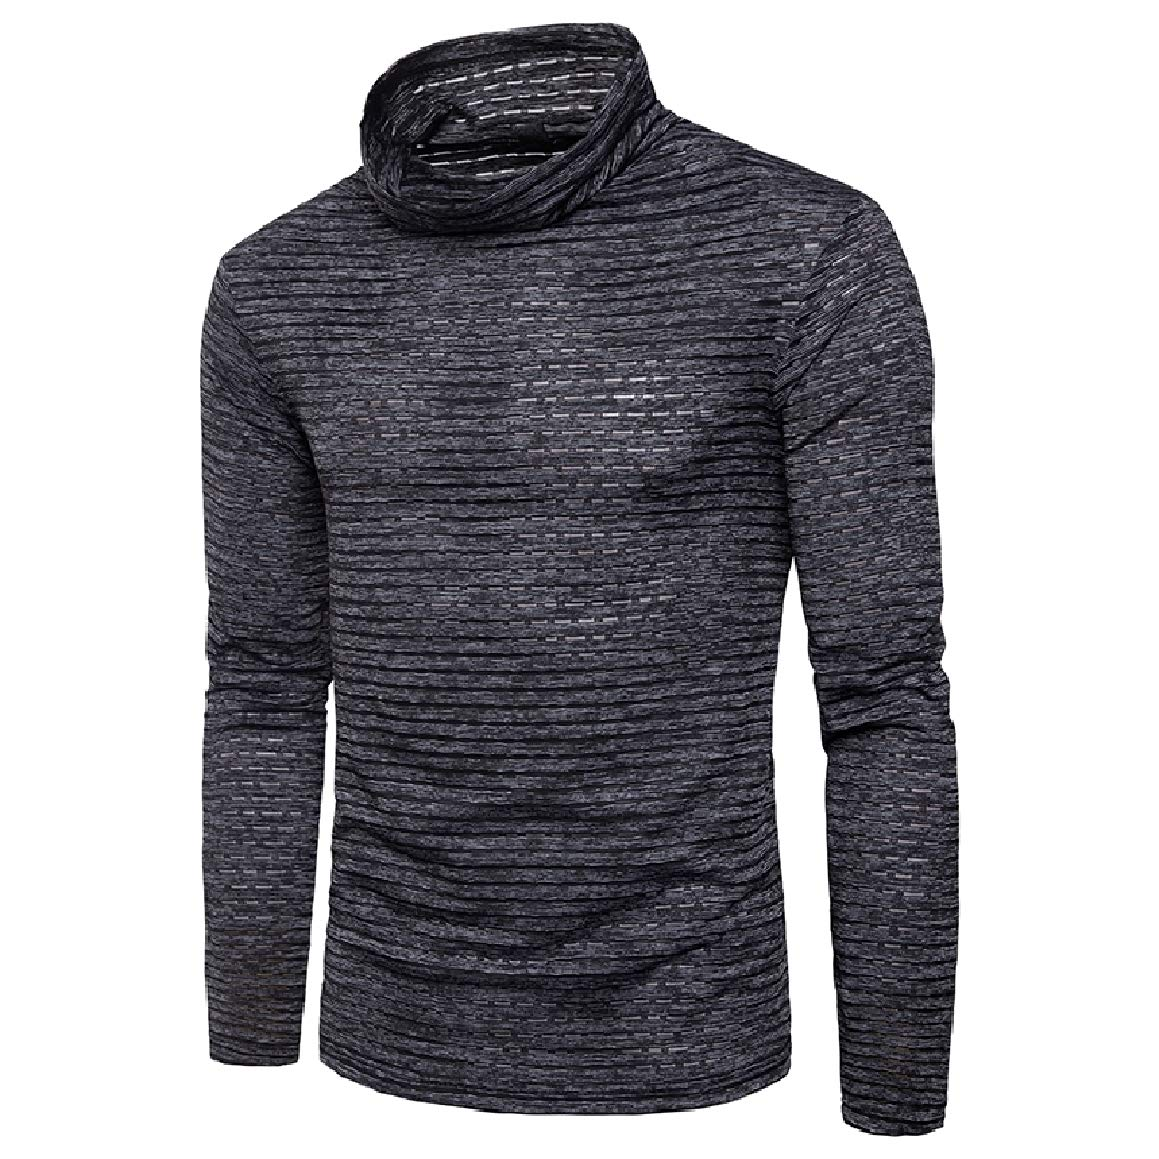 Abetteric Mens Turtleneck Plus Size Style African Warm Tees Top Tshirts